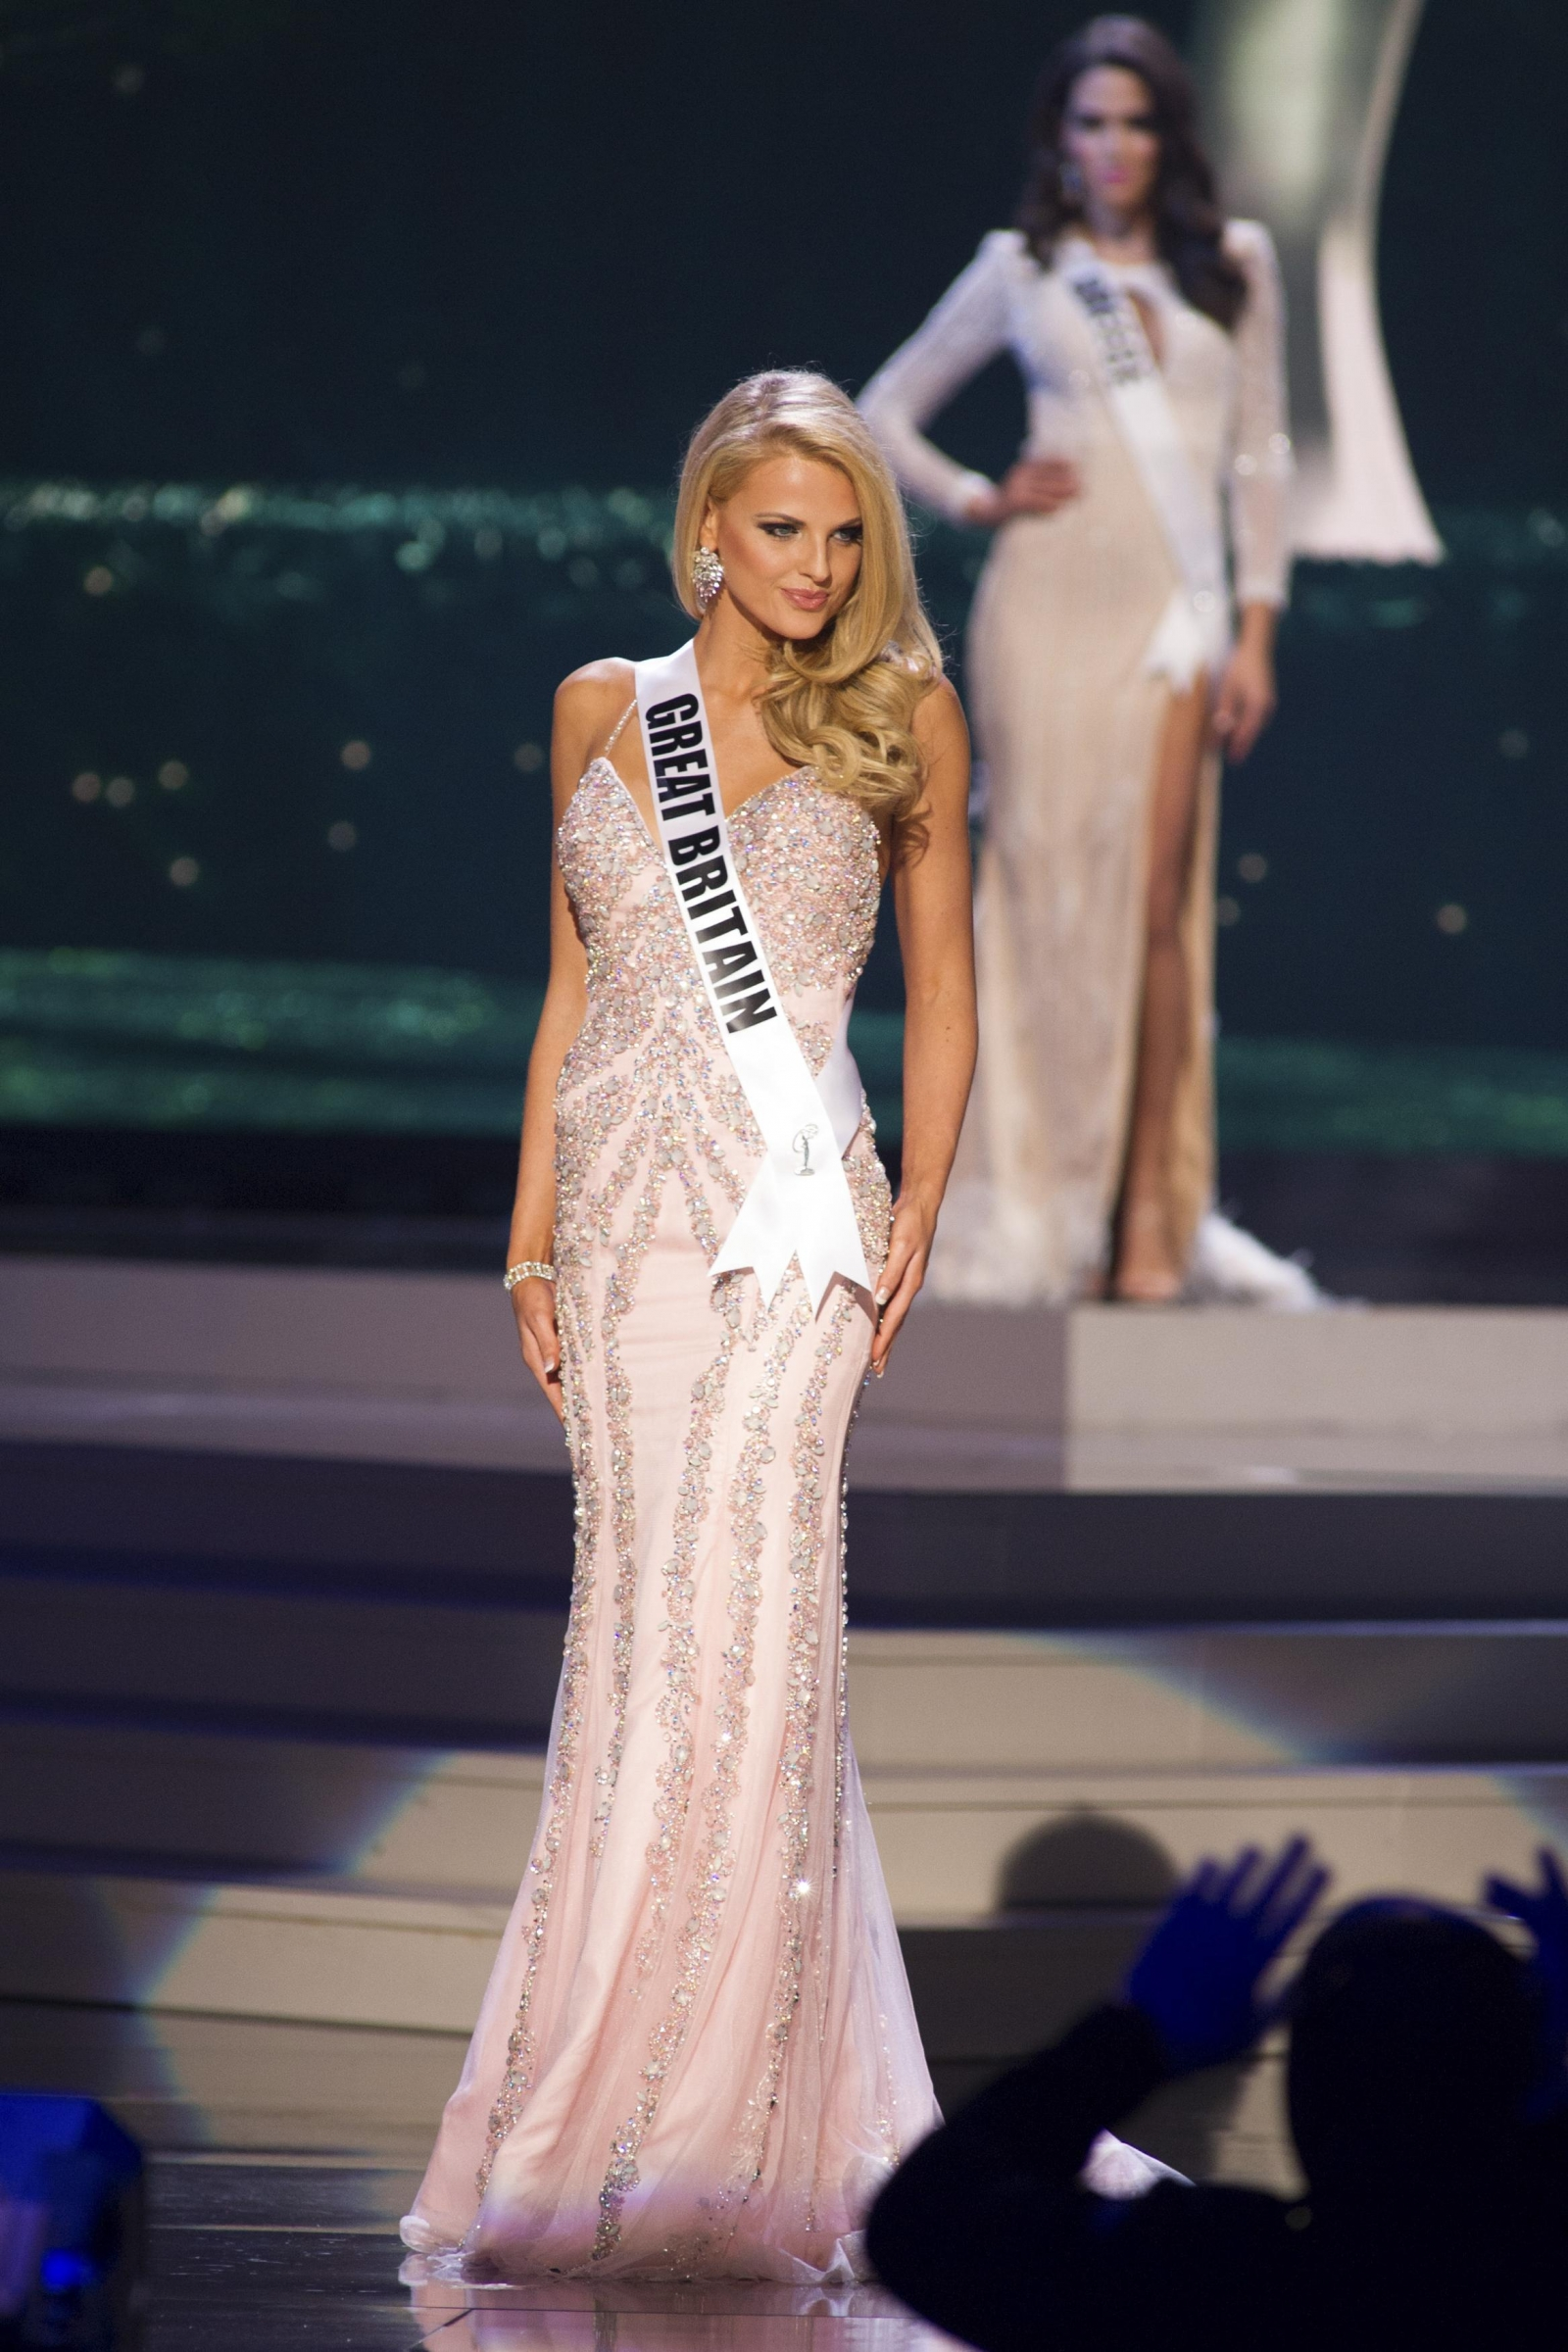 Miss universe 2016 gown competition